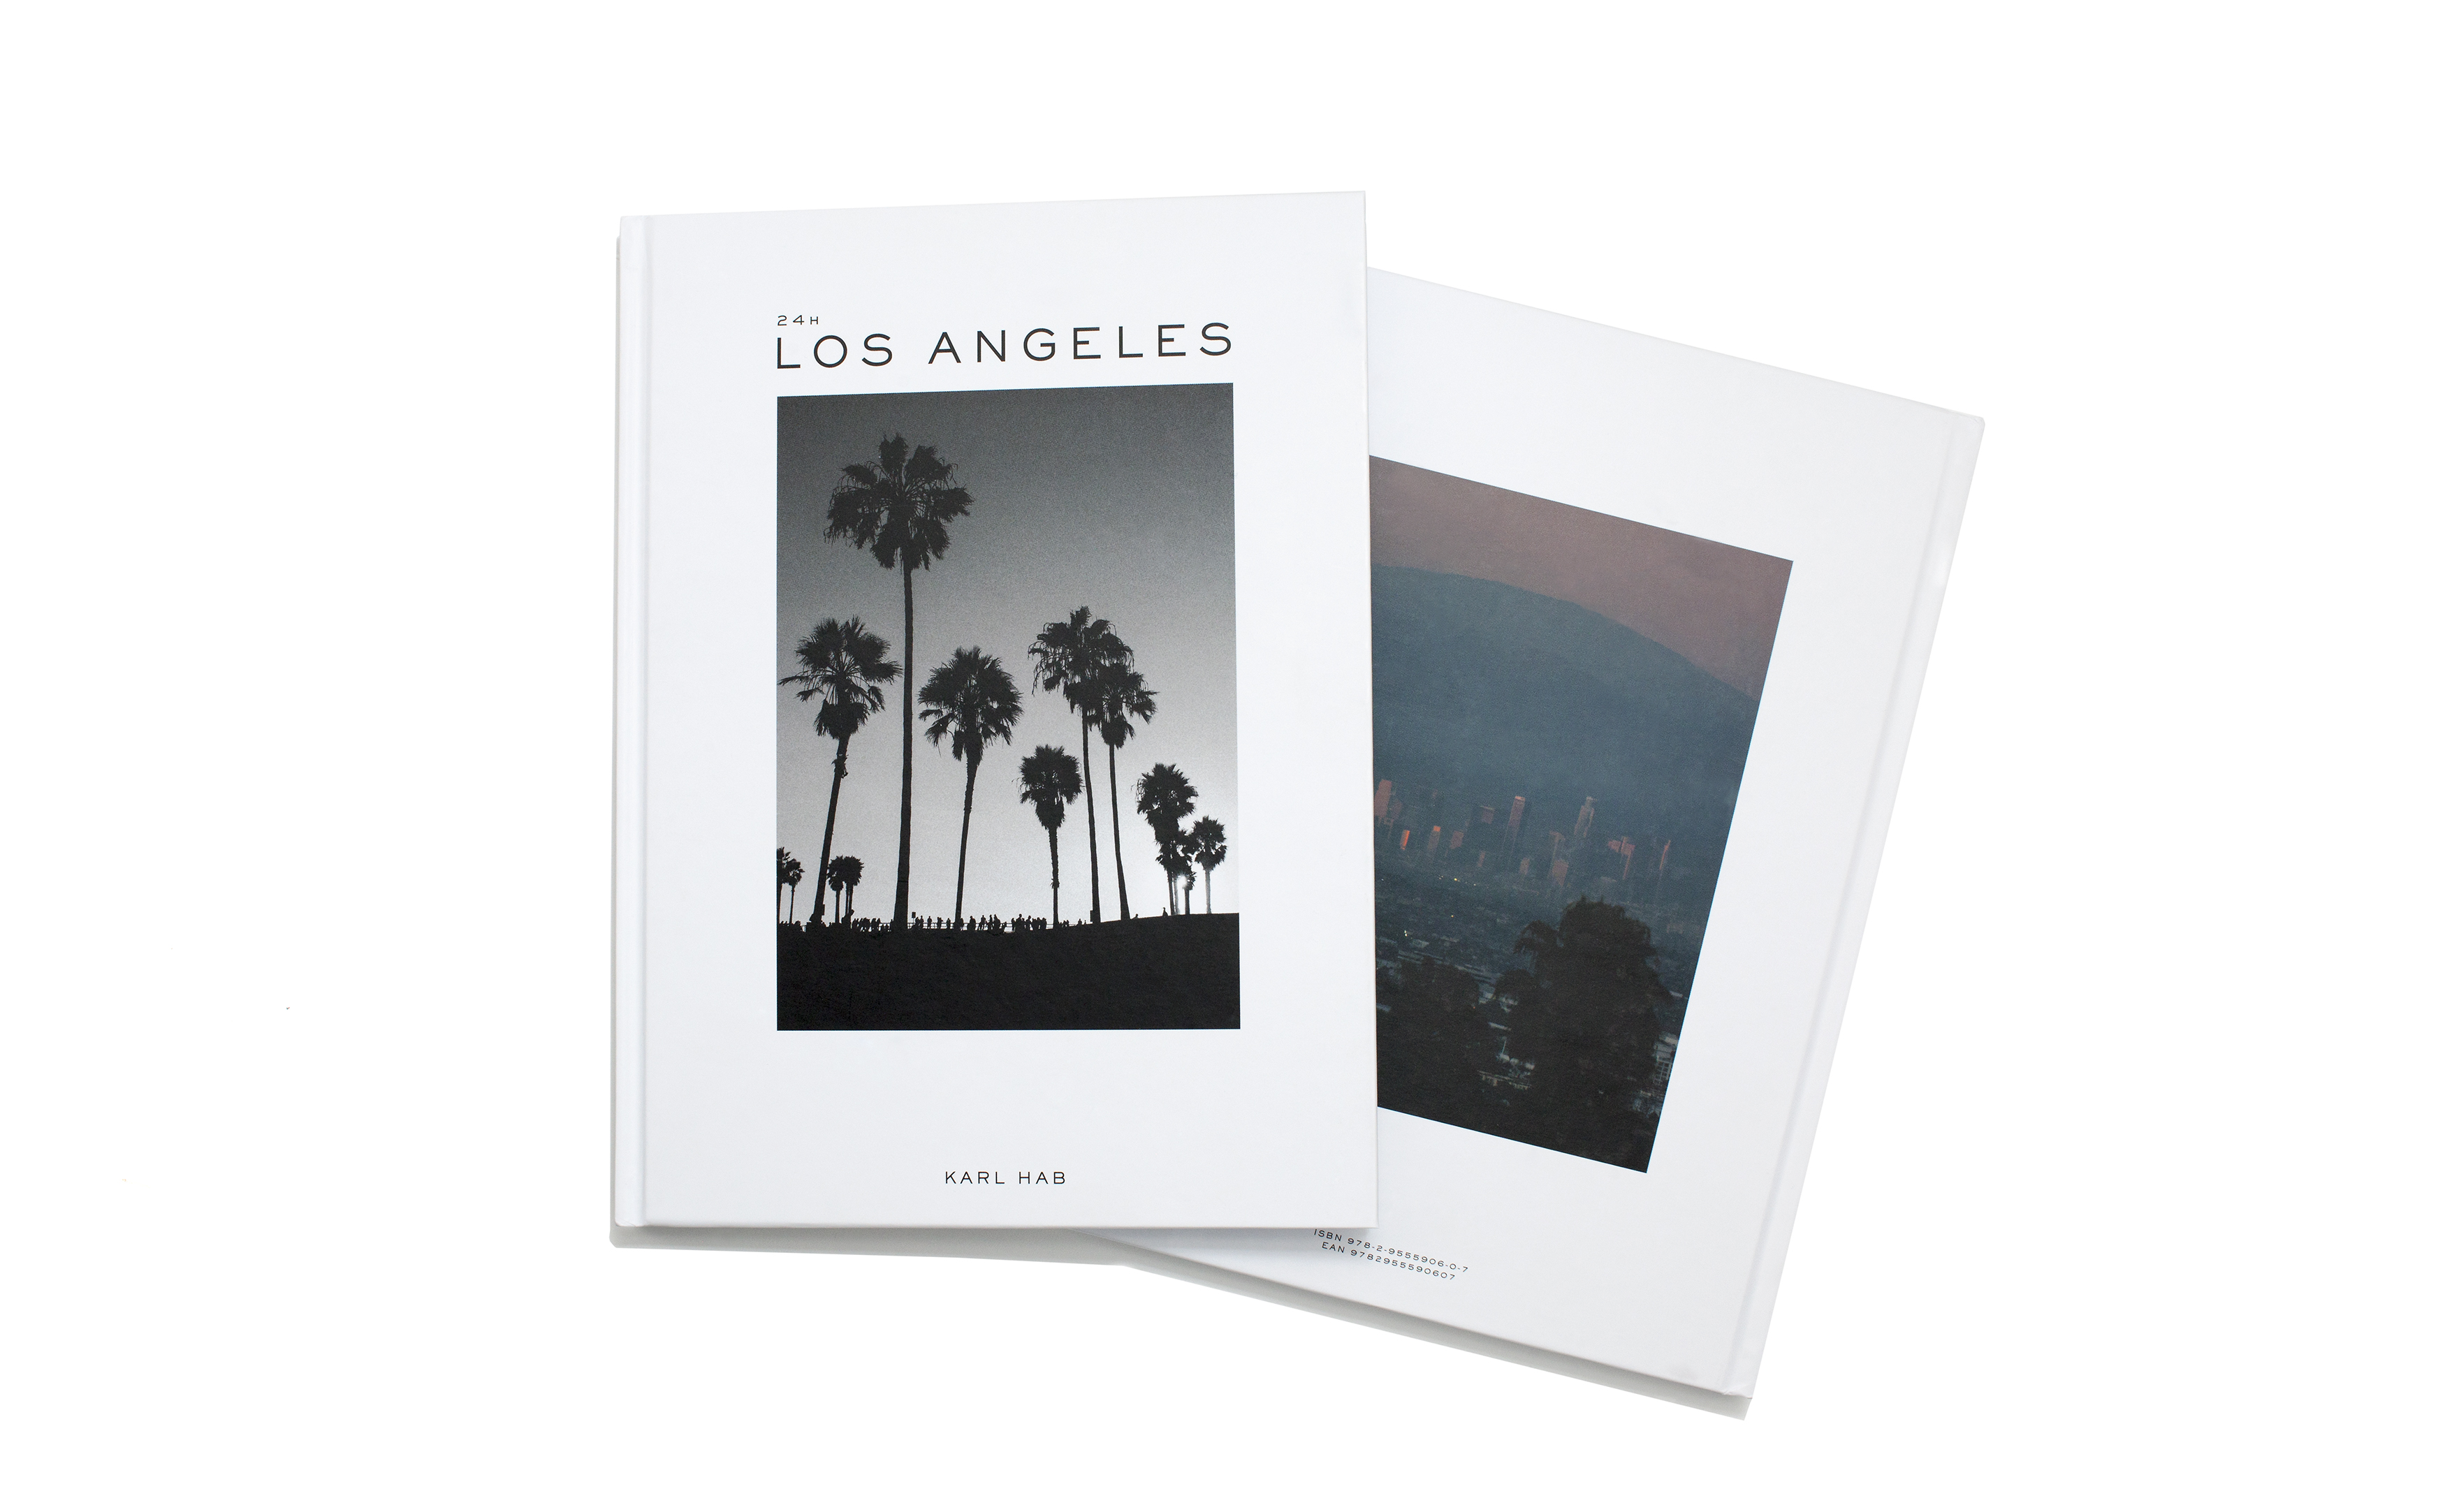 24H Los Angeles The New Art Book by Karl Hab